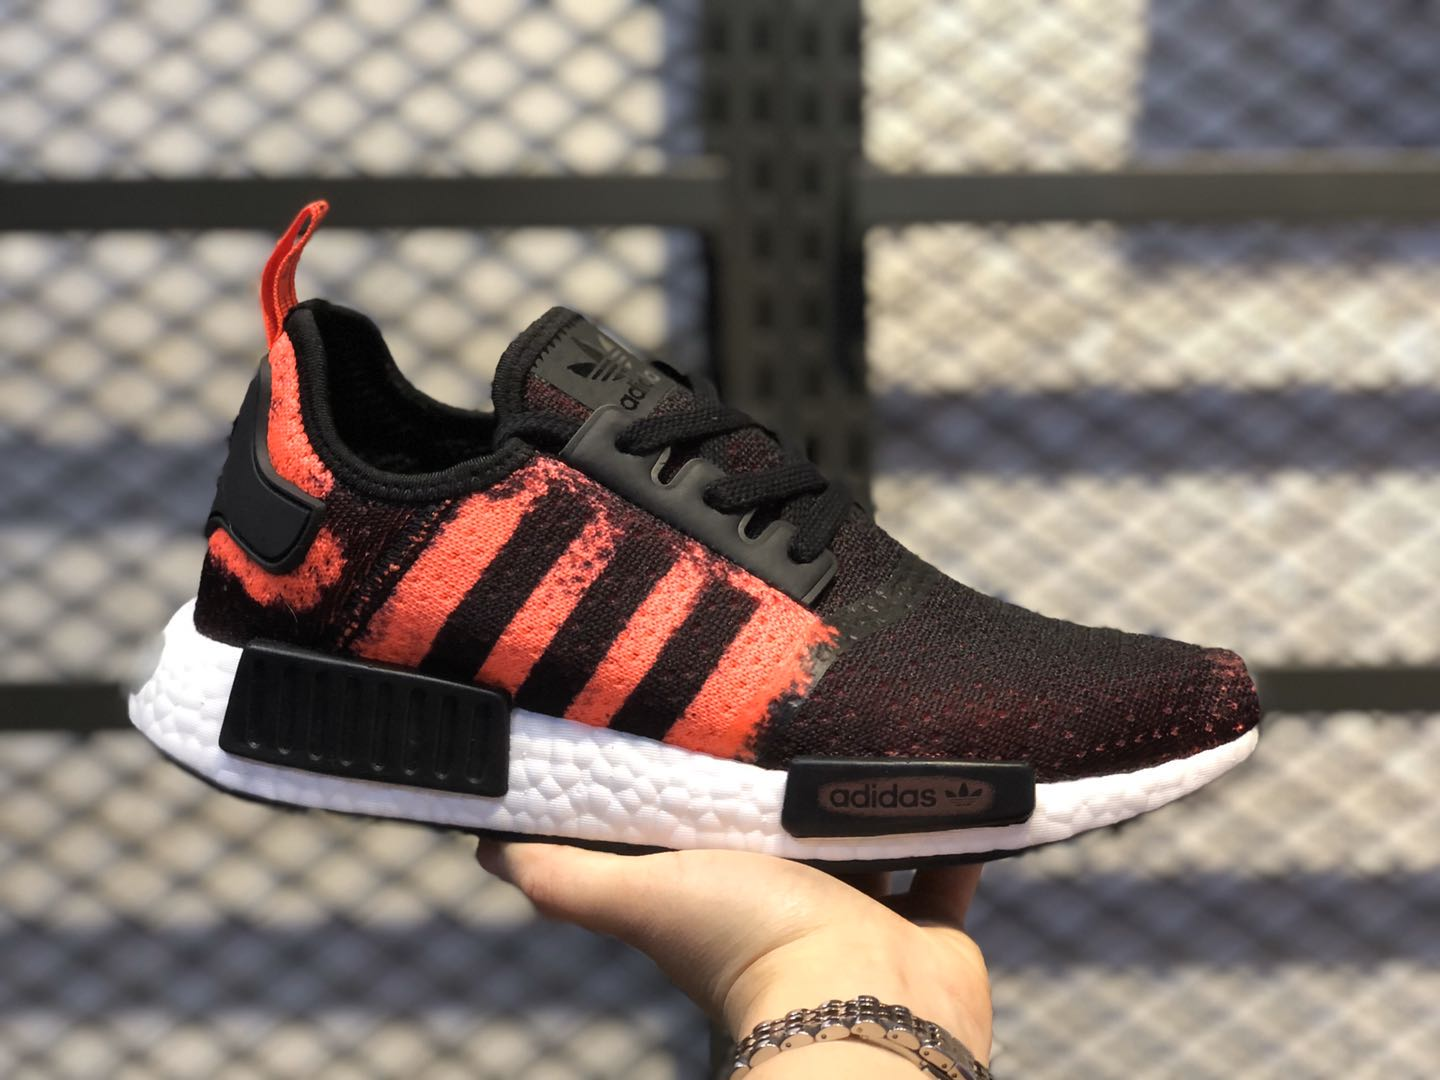 Adidas NMD R-1 Core Black/Solar Red-Core Black Running Shoes G27951